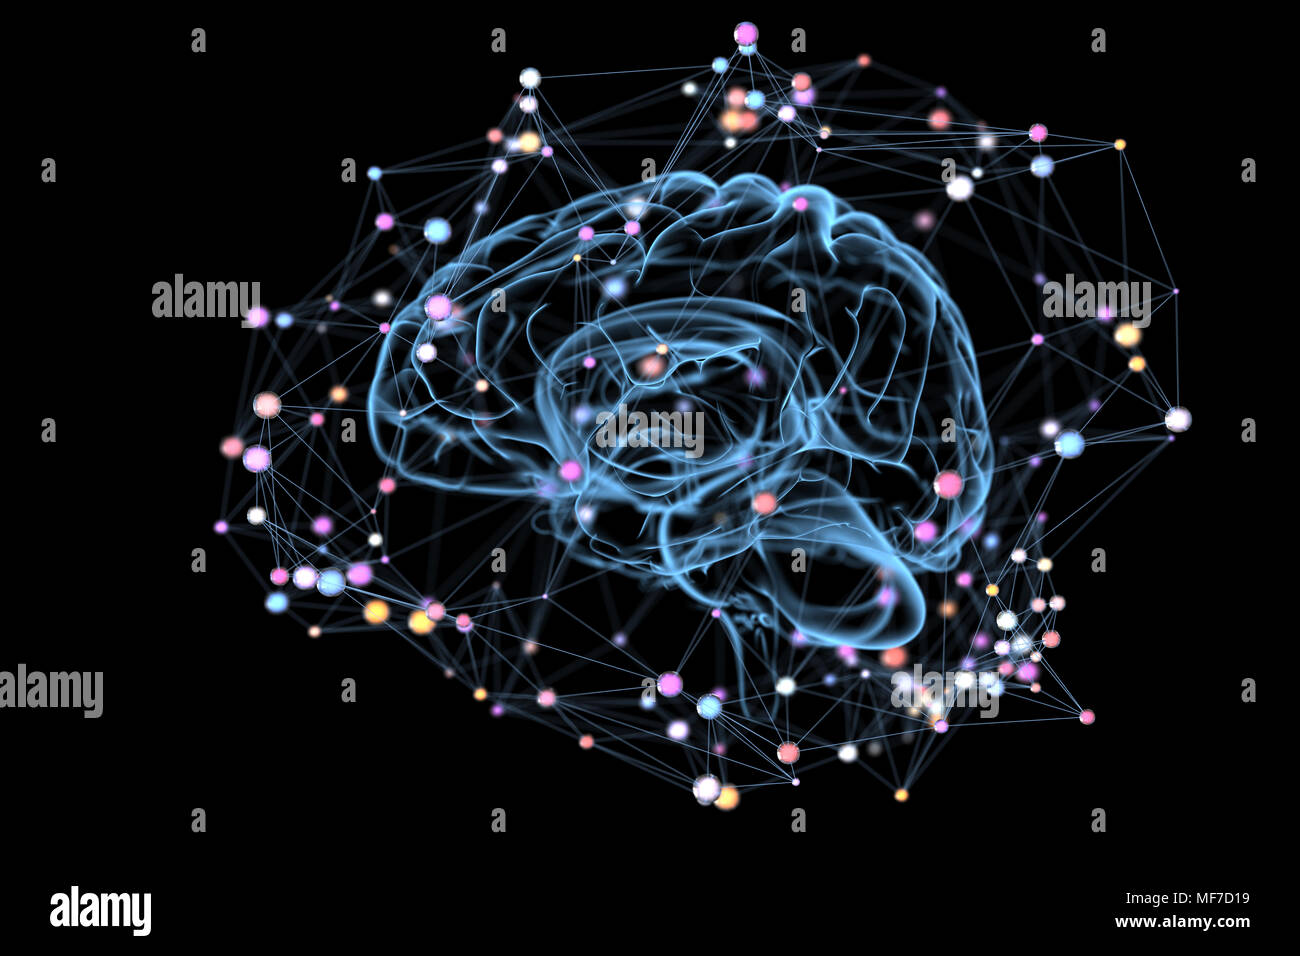 Illustration of the thought processes in the brain. 3D illustration Stock Photo